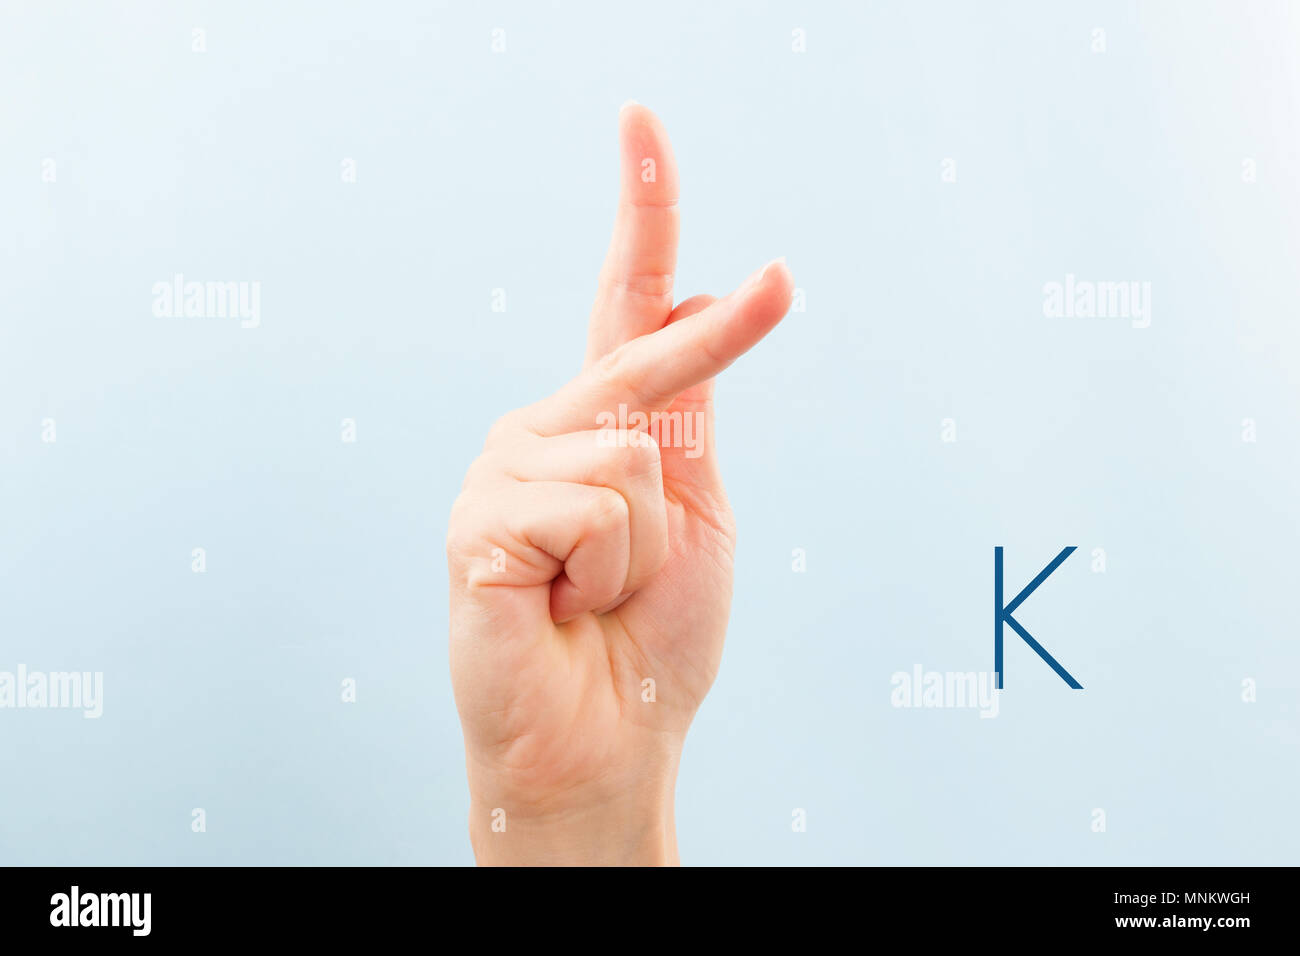 Letter K Stock Photos Letter K Stock Images Page 3 Alamy